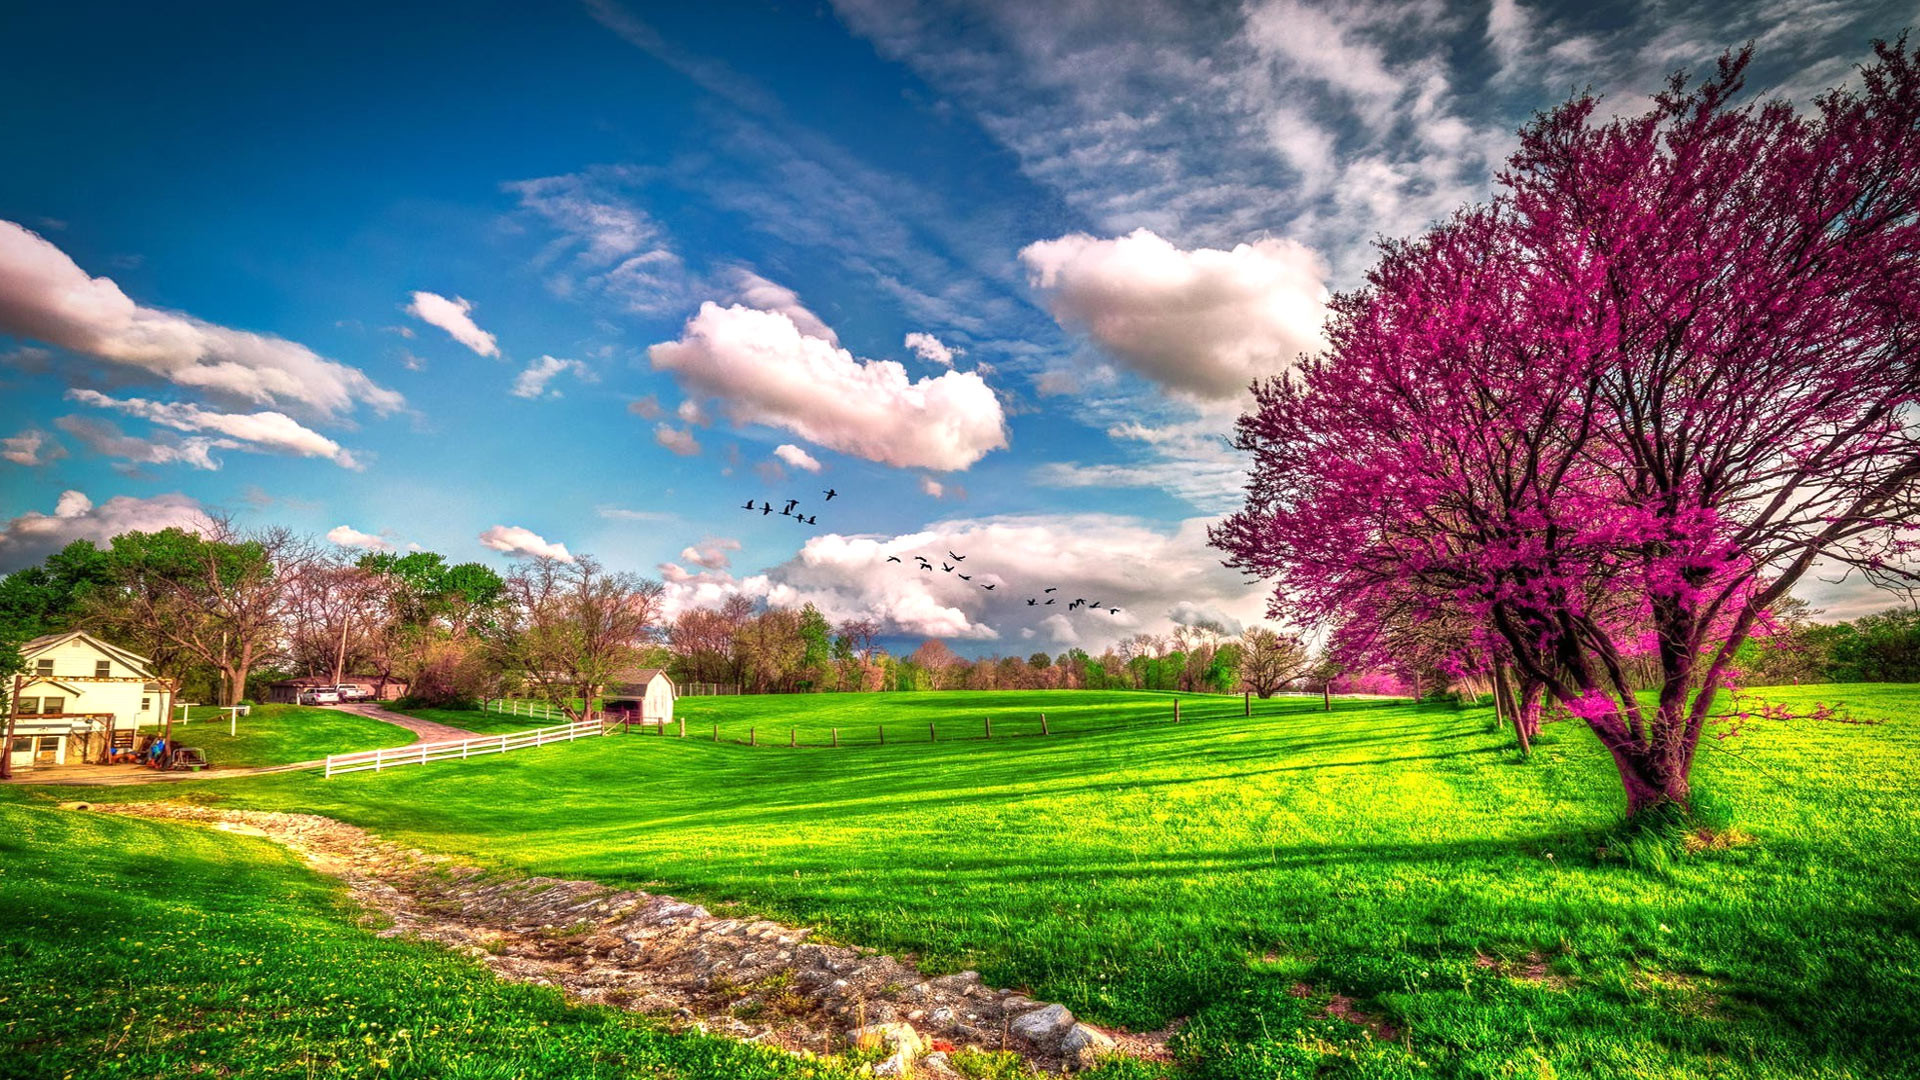 Scenic Wallpapers For Desktop 51 Pictures